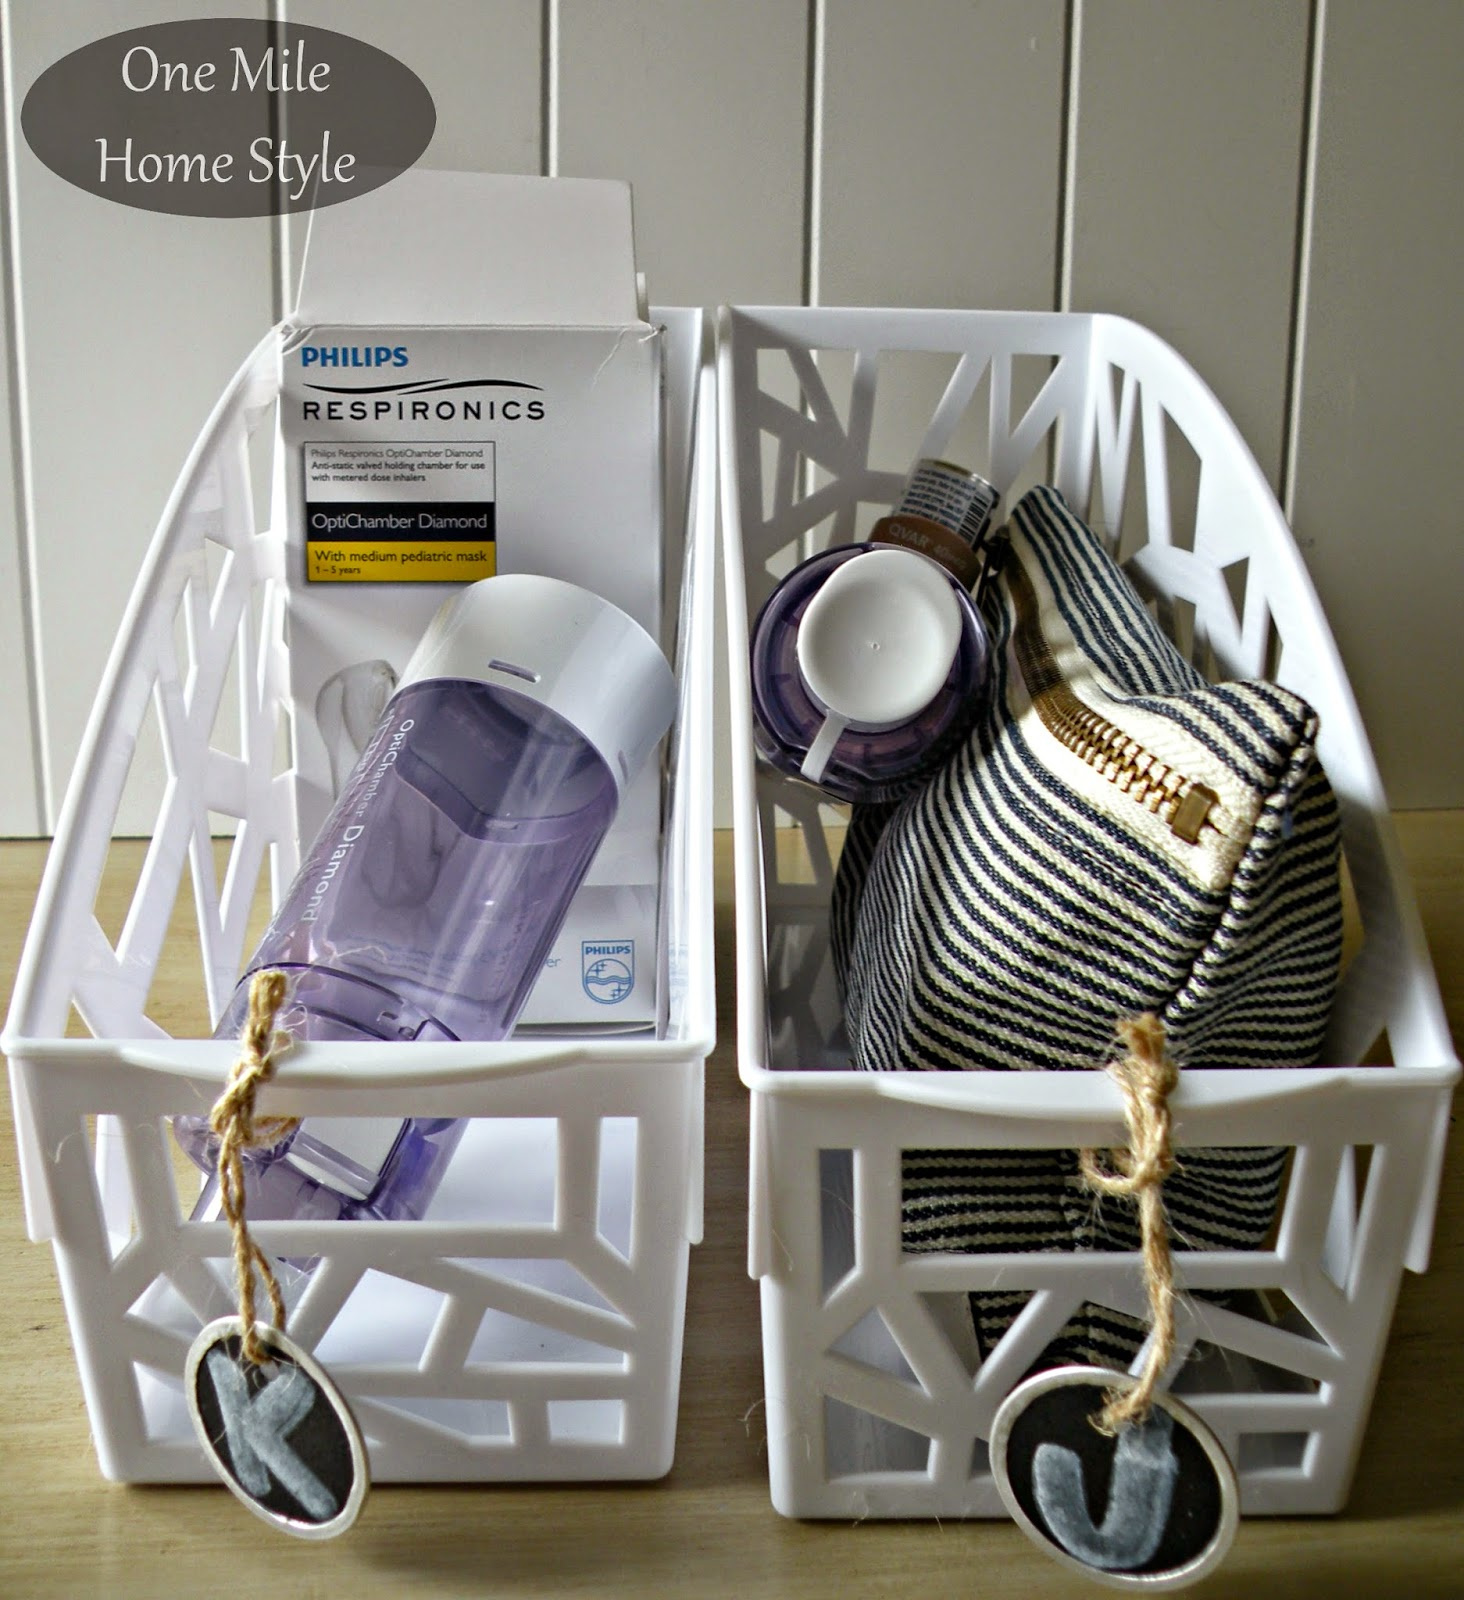 Organizing The Bathroom With Dollar Spot Finds - Storing Everyday Medicines